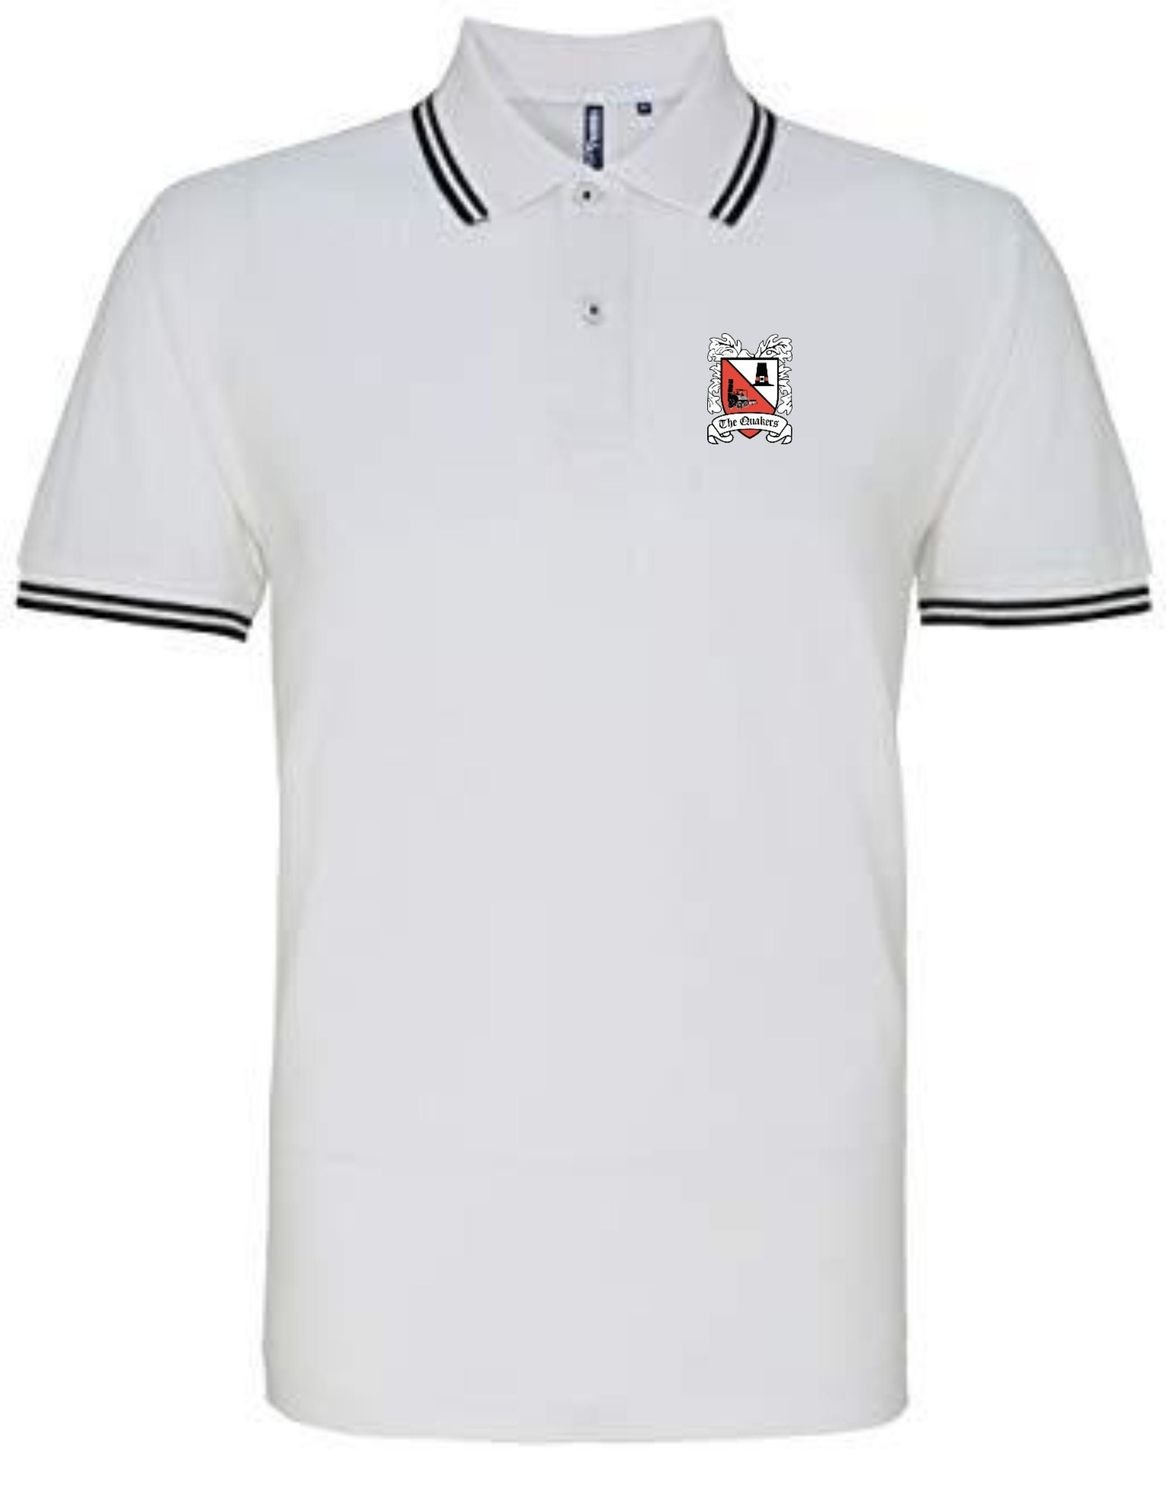 Polo Shirt - White with Black Trim (Ordered on Request)